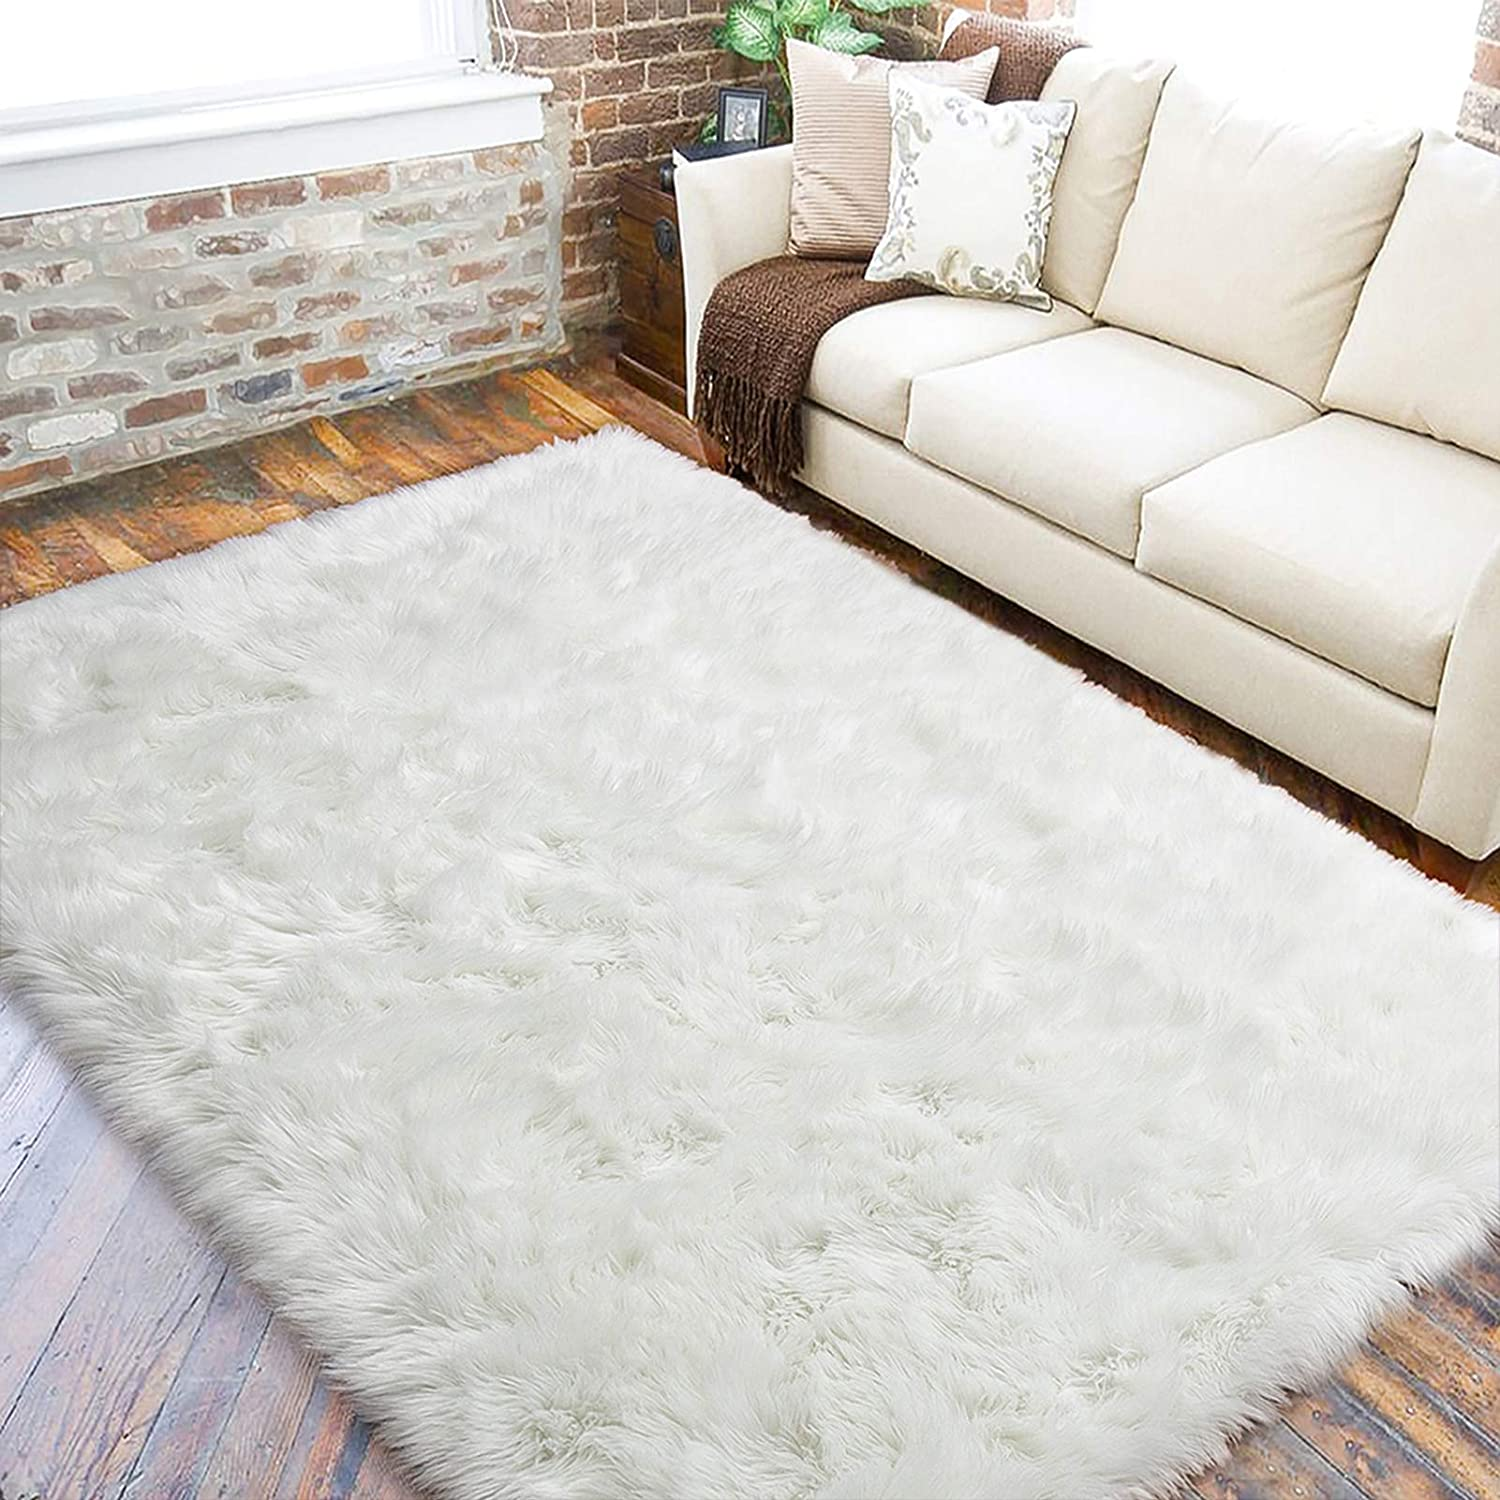 Shop Fur Sheepskin Area Rug for Bedroom from Amazon on Openhaus